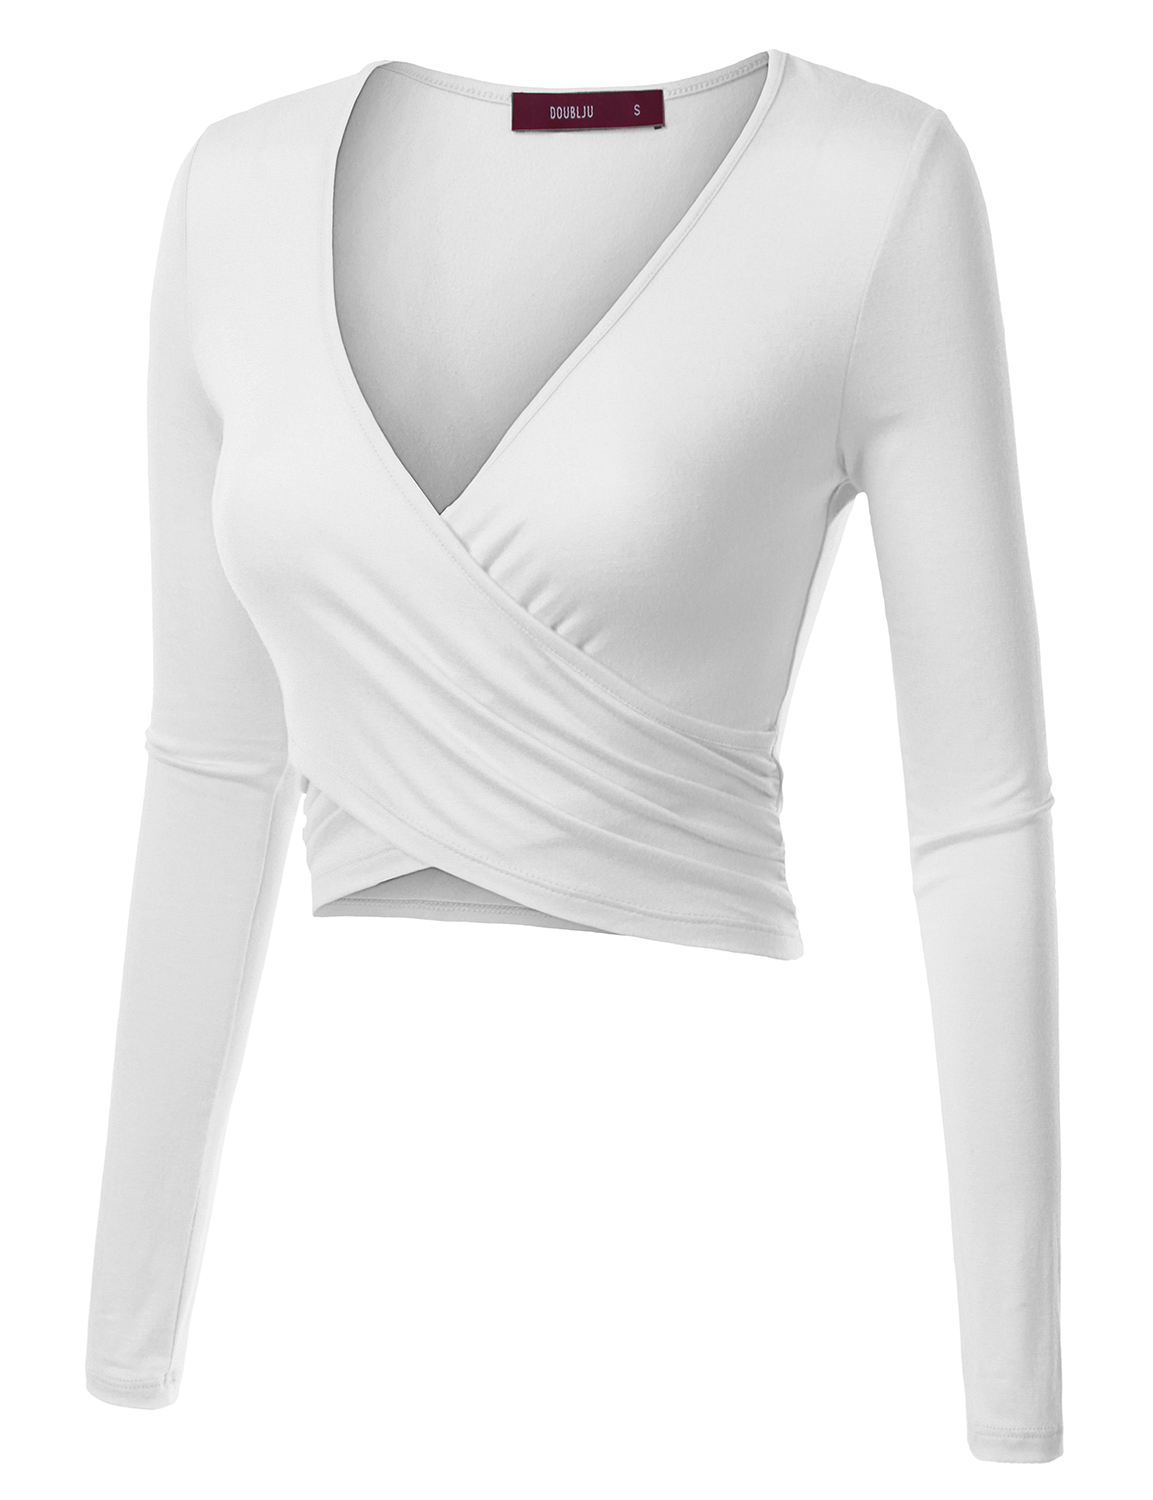 14ac40267e9e0 Doublju Deep V-Neck Fitted Surplice Wrap Crop Top for Women with ...